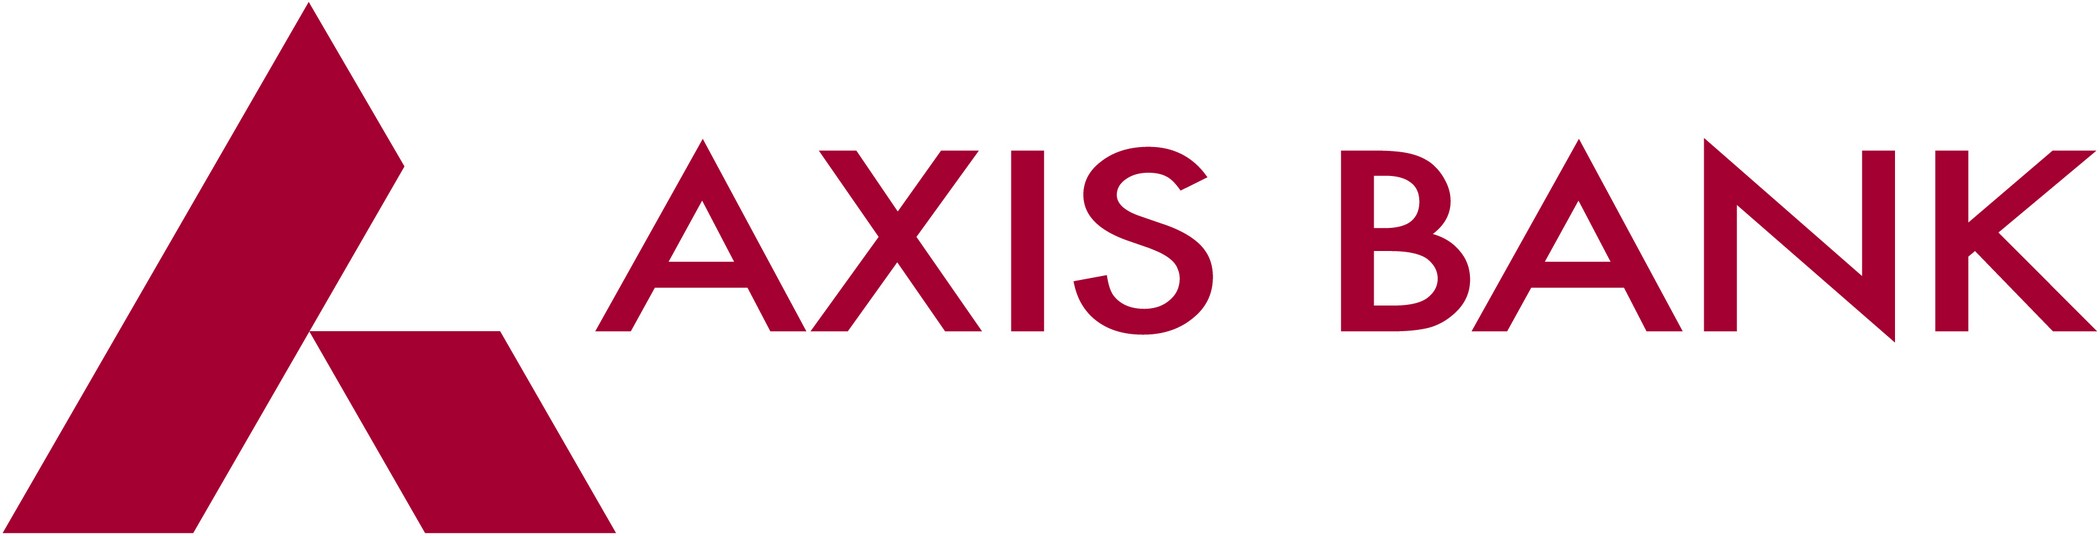 axis bank home loan center in hyderabad